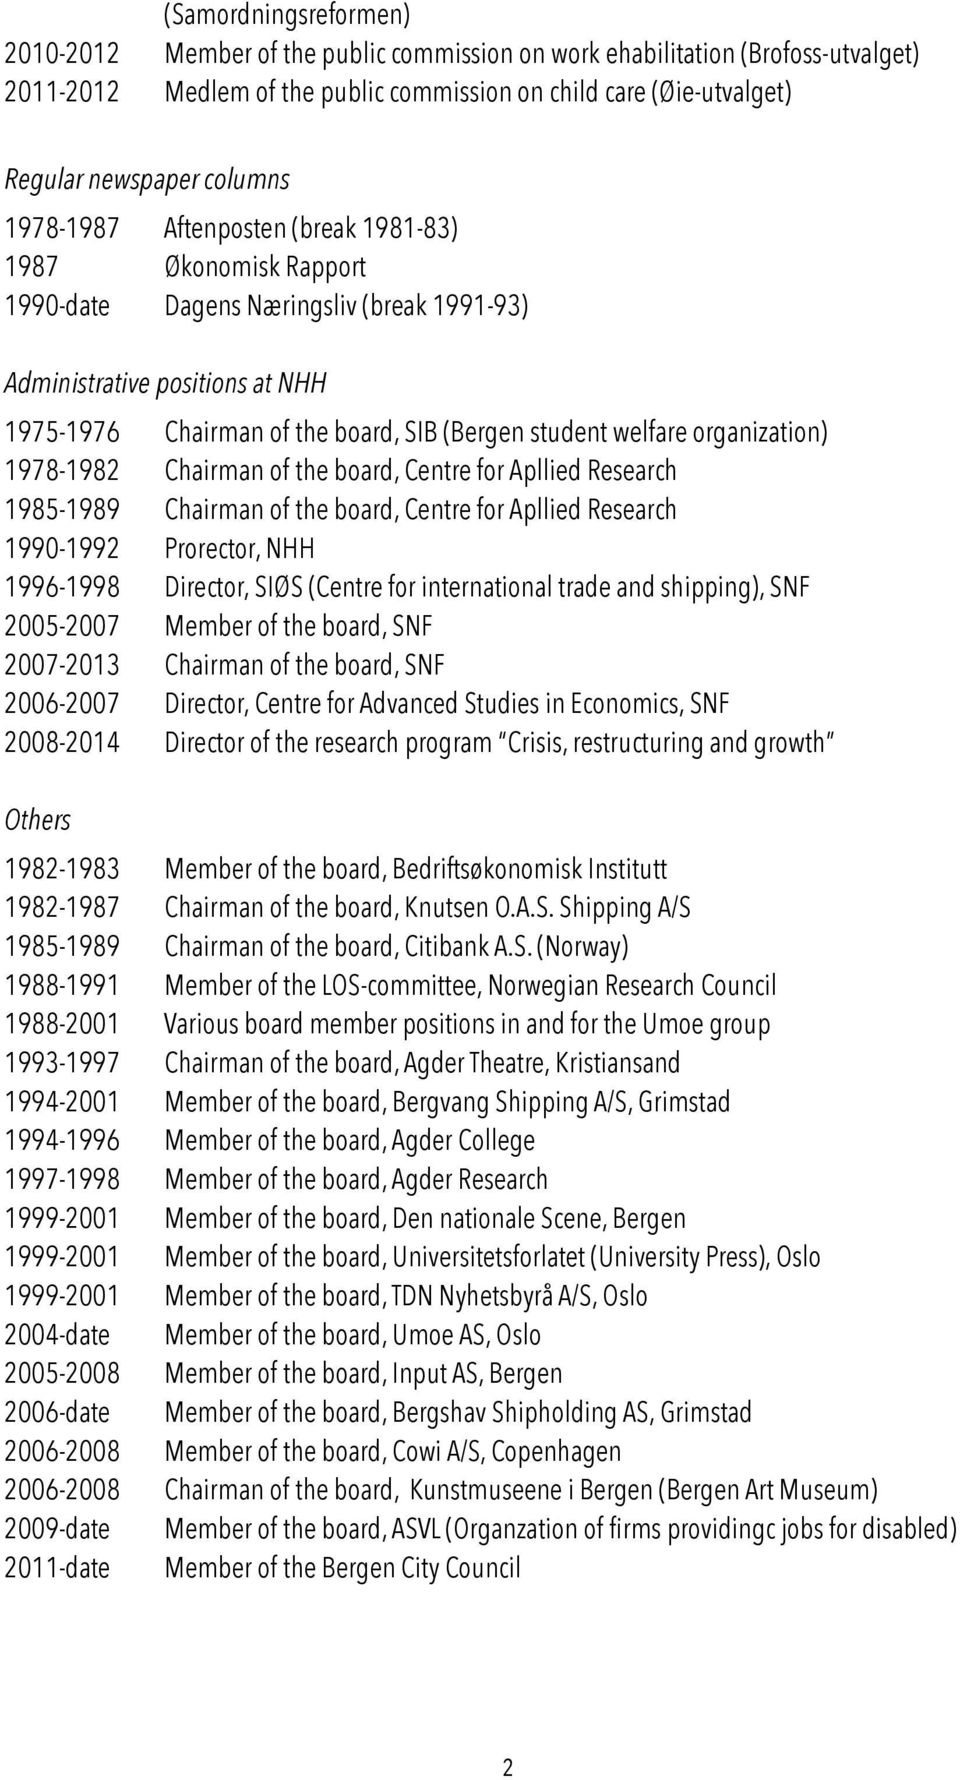 welfare organization) 1978-1982 Chairman of the board, Centre for Apllied Research 1985-1989 Chairman of the board, Centre for Apllied Research 1990-1992 Prorector, NHH 1996-1998 Director, SIØS